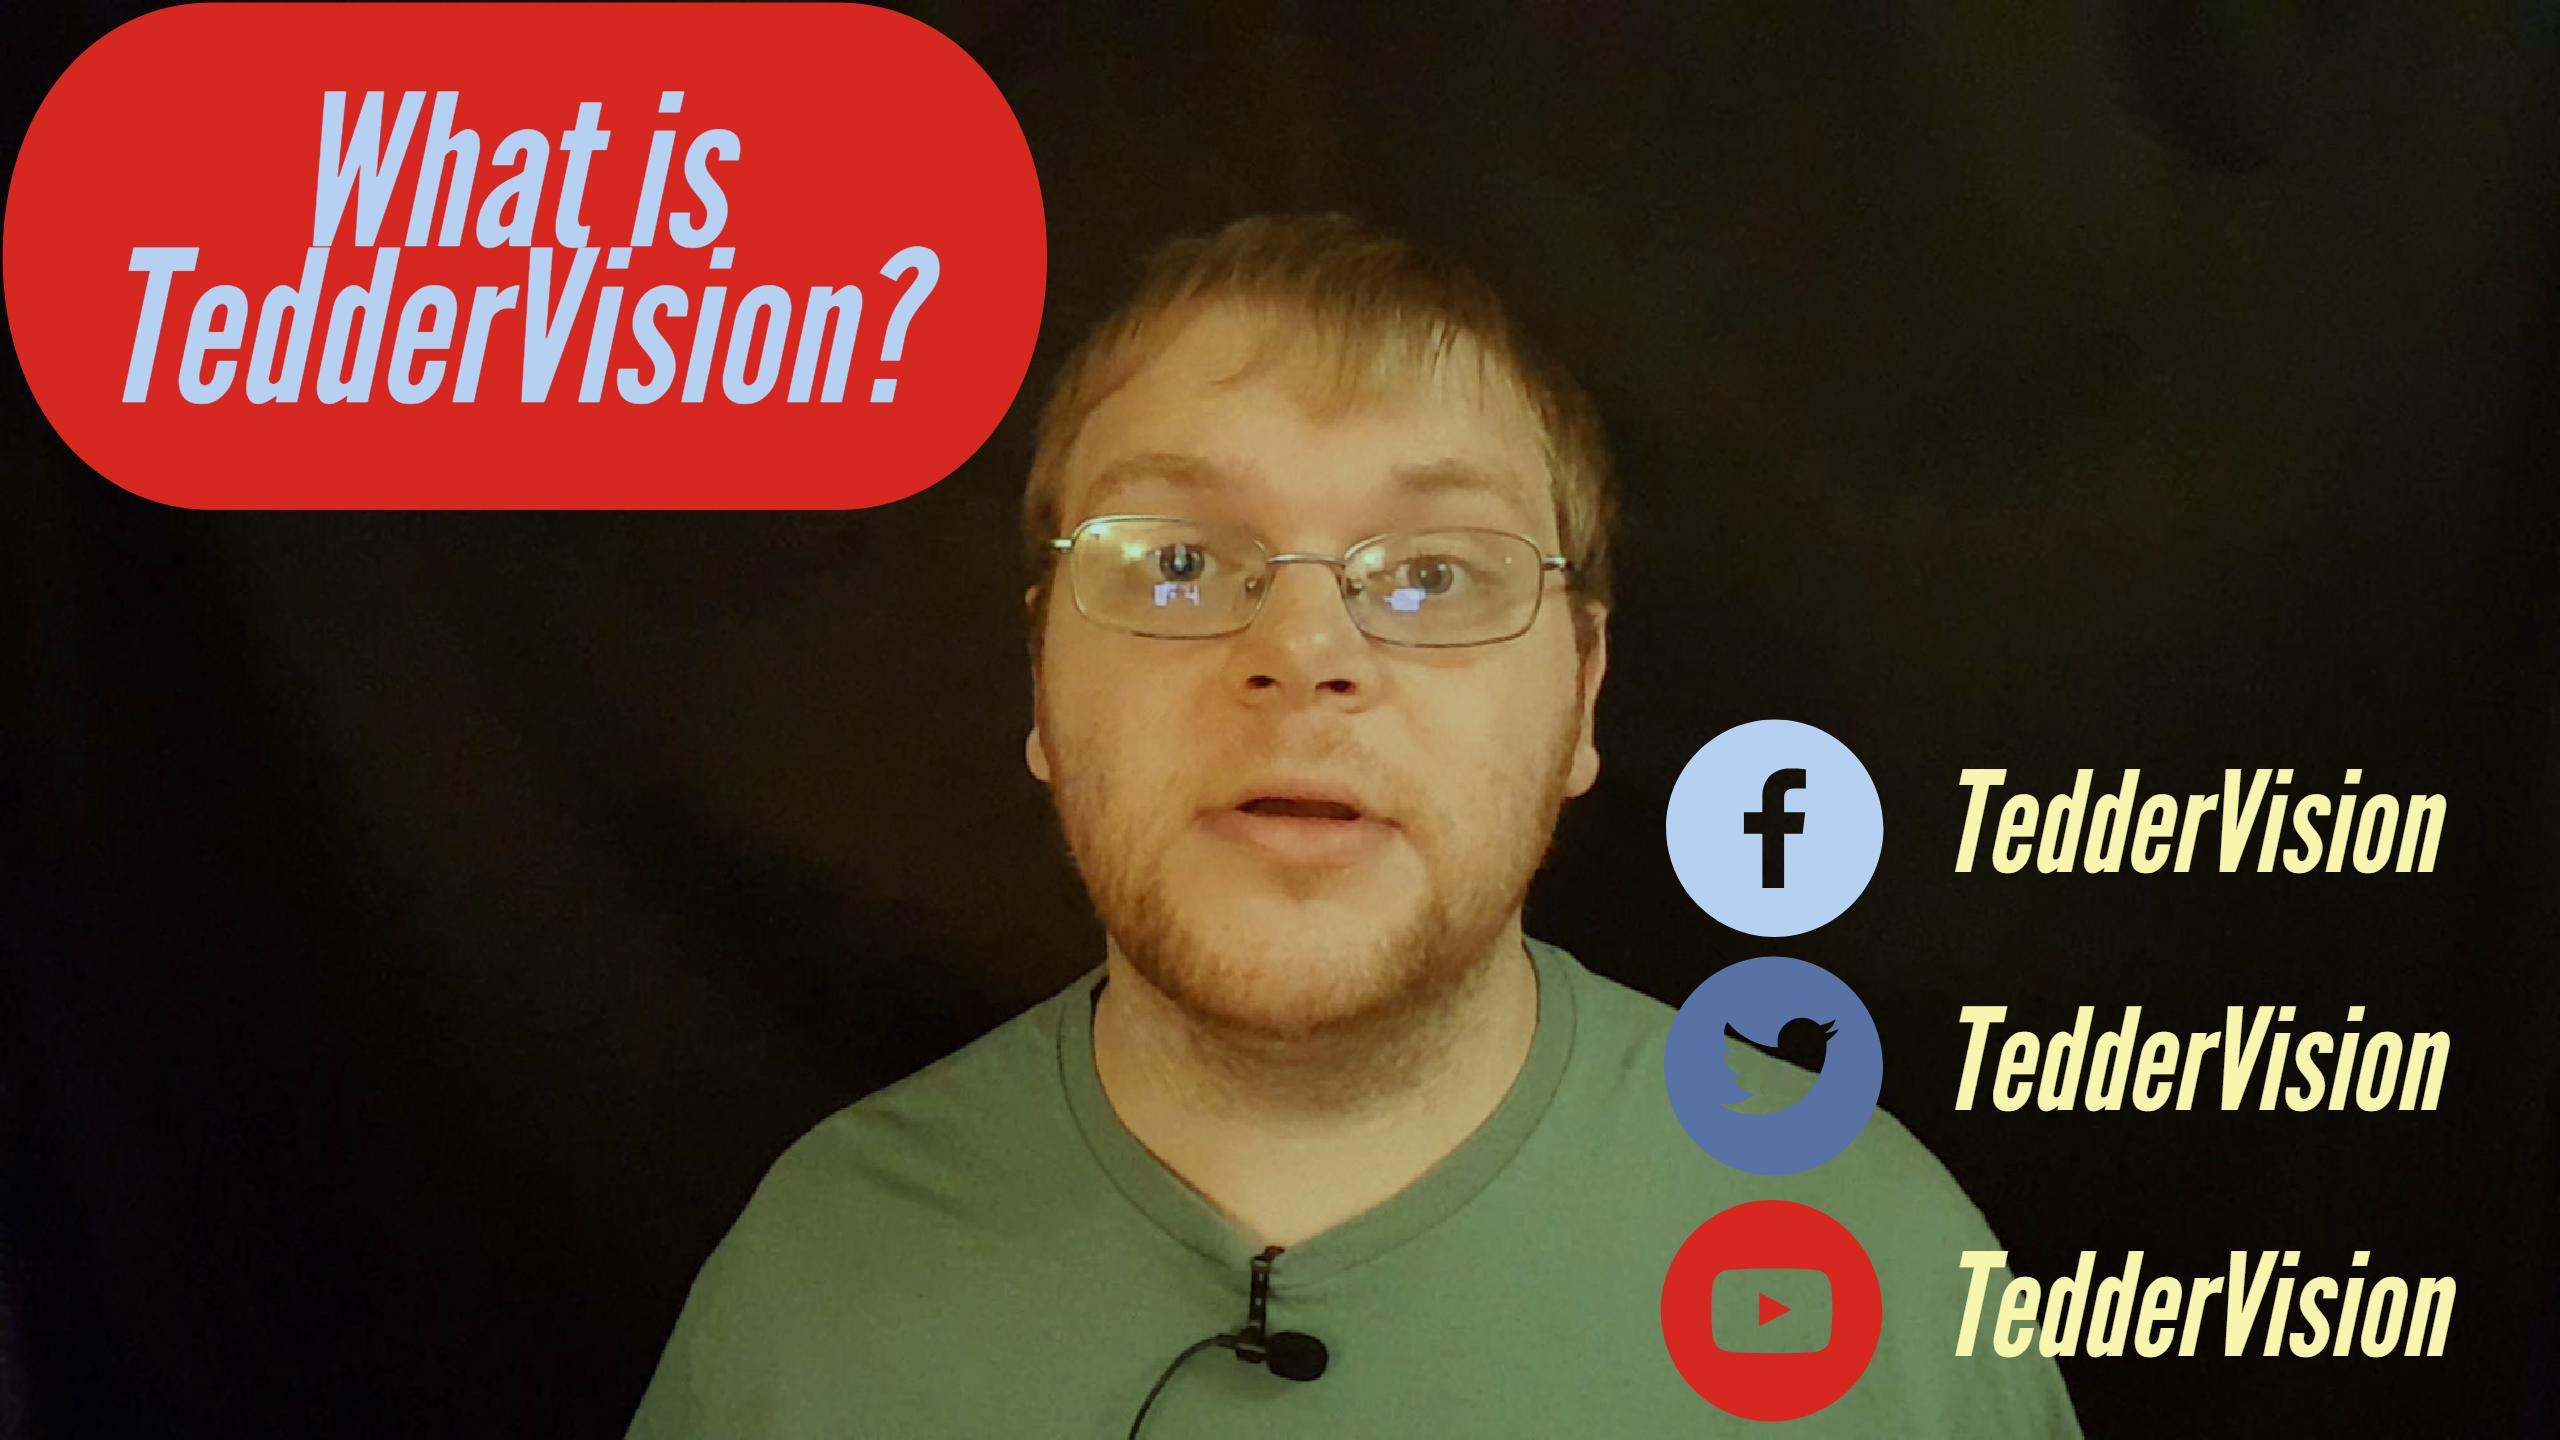 What is TedderVision?